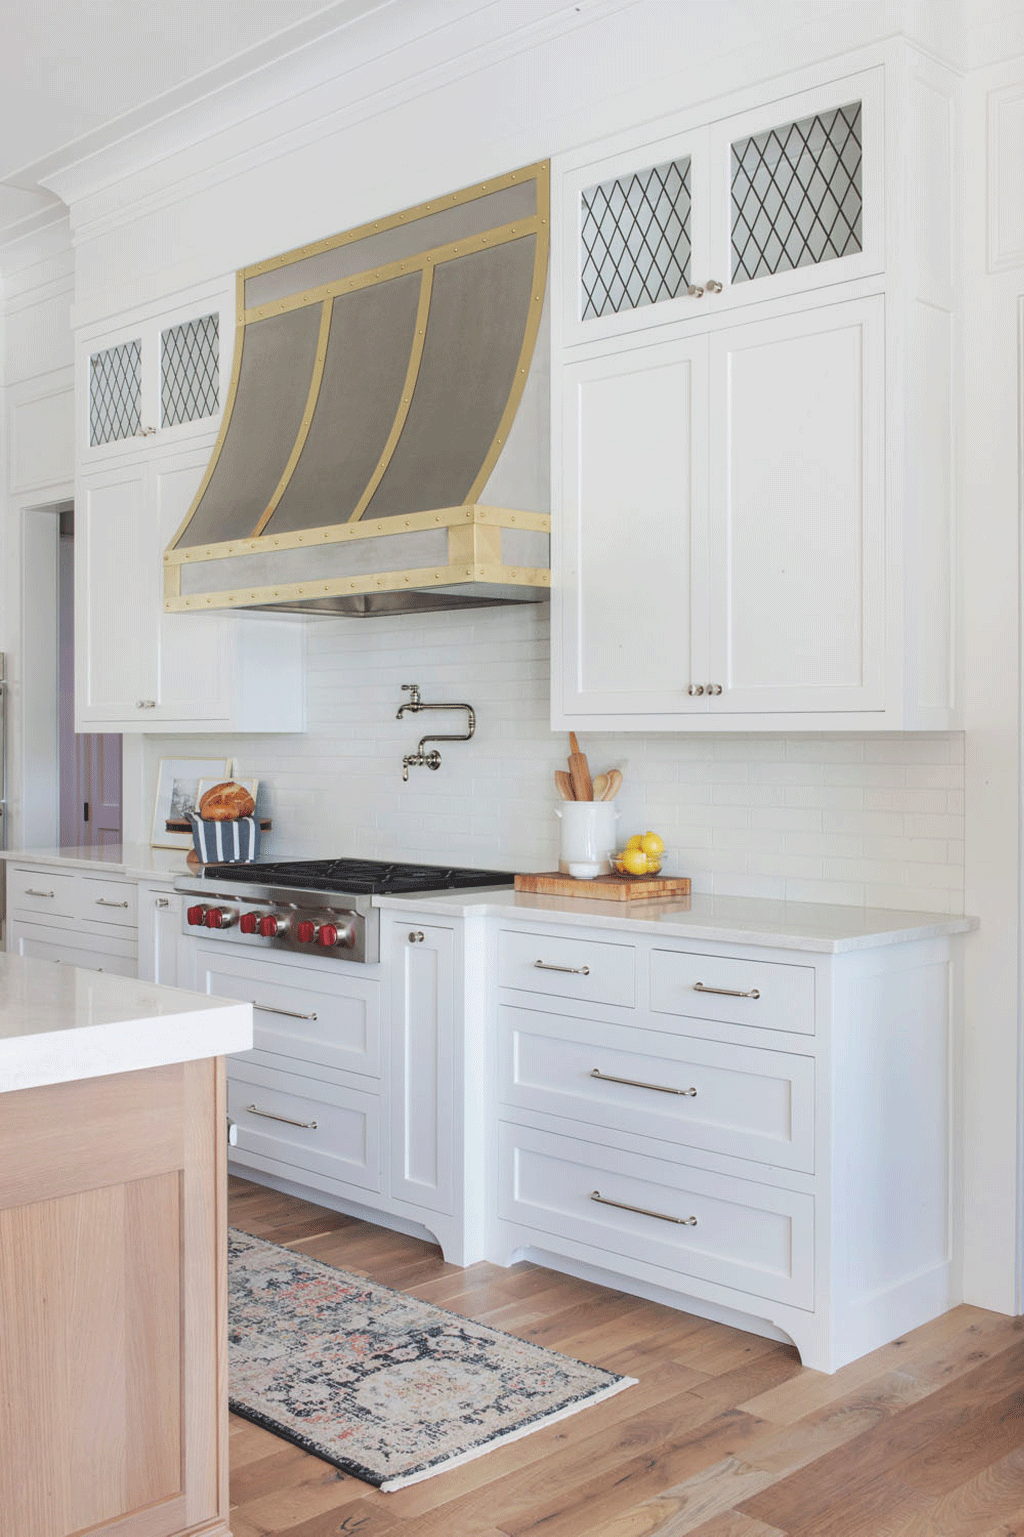 Chantilly Lace on Kitchen Cabinets + Trim by Scout Nimble